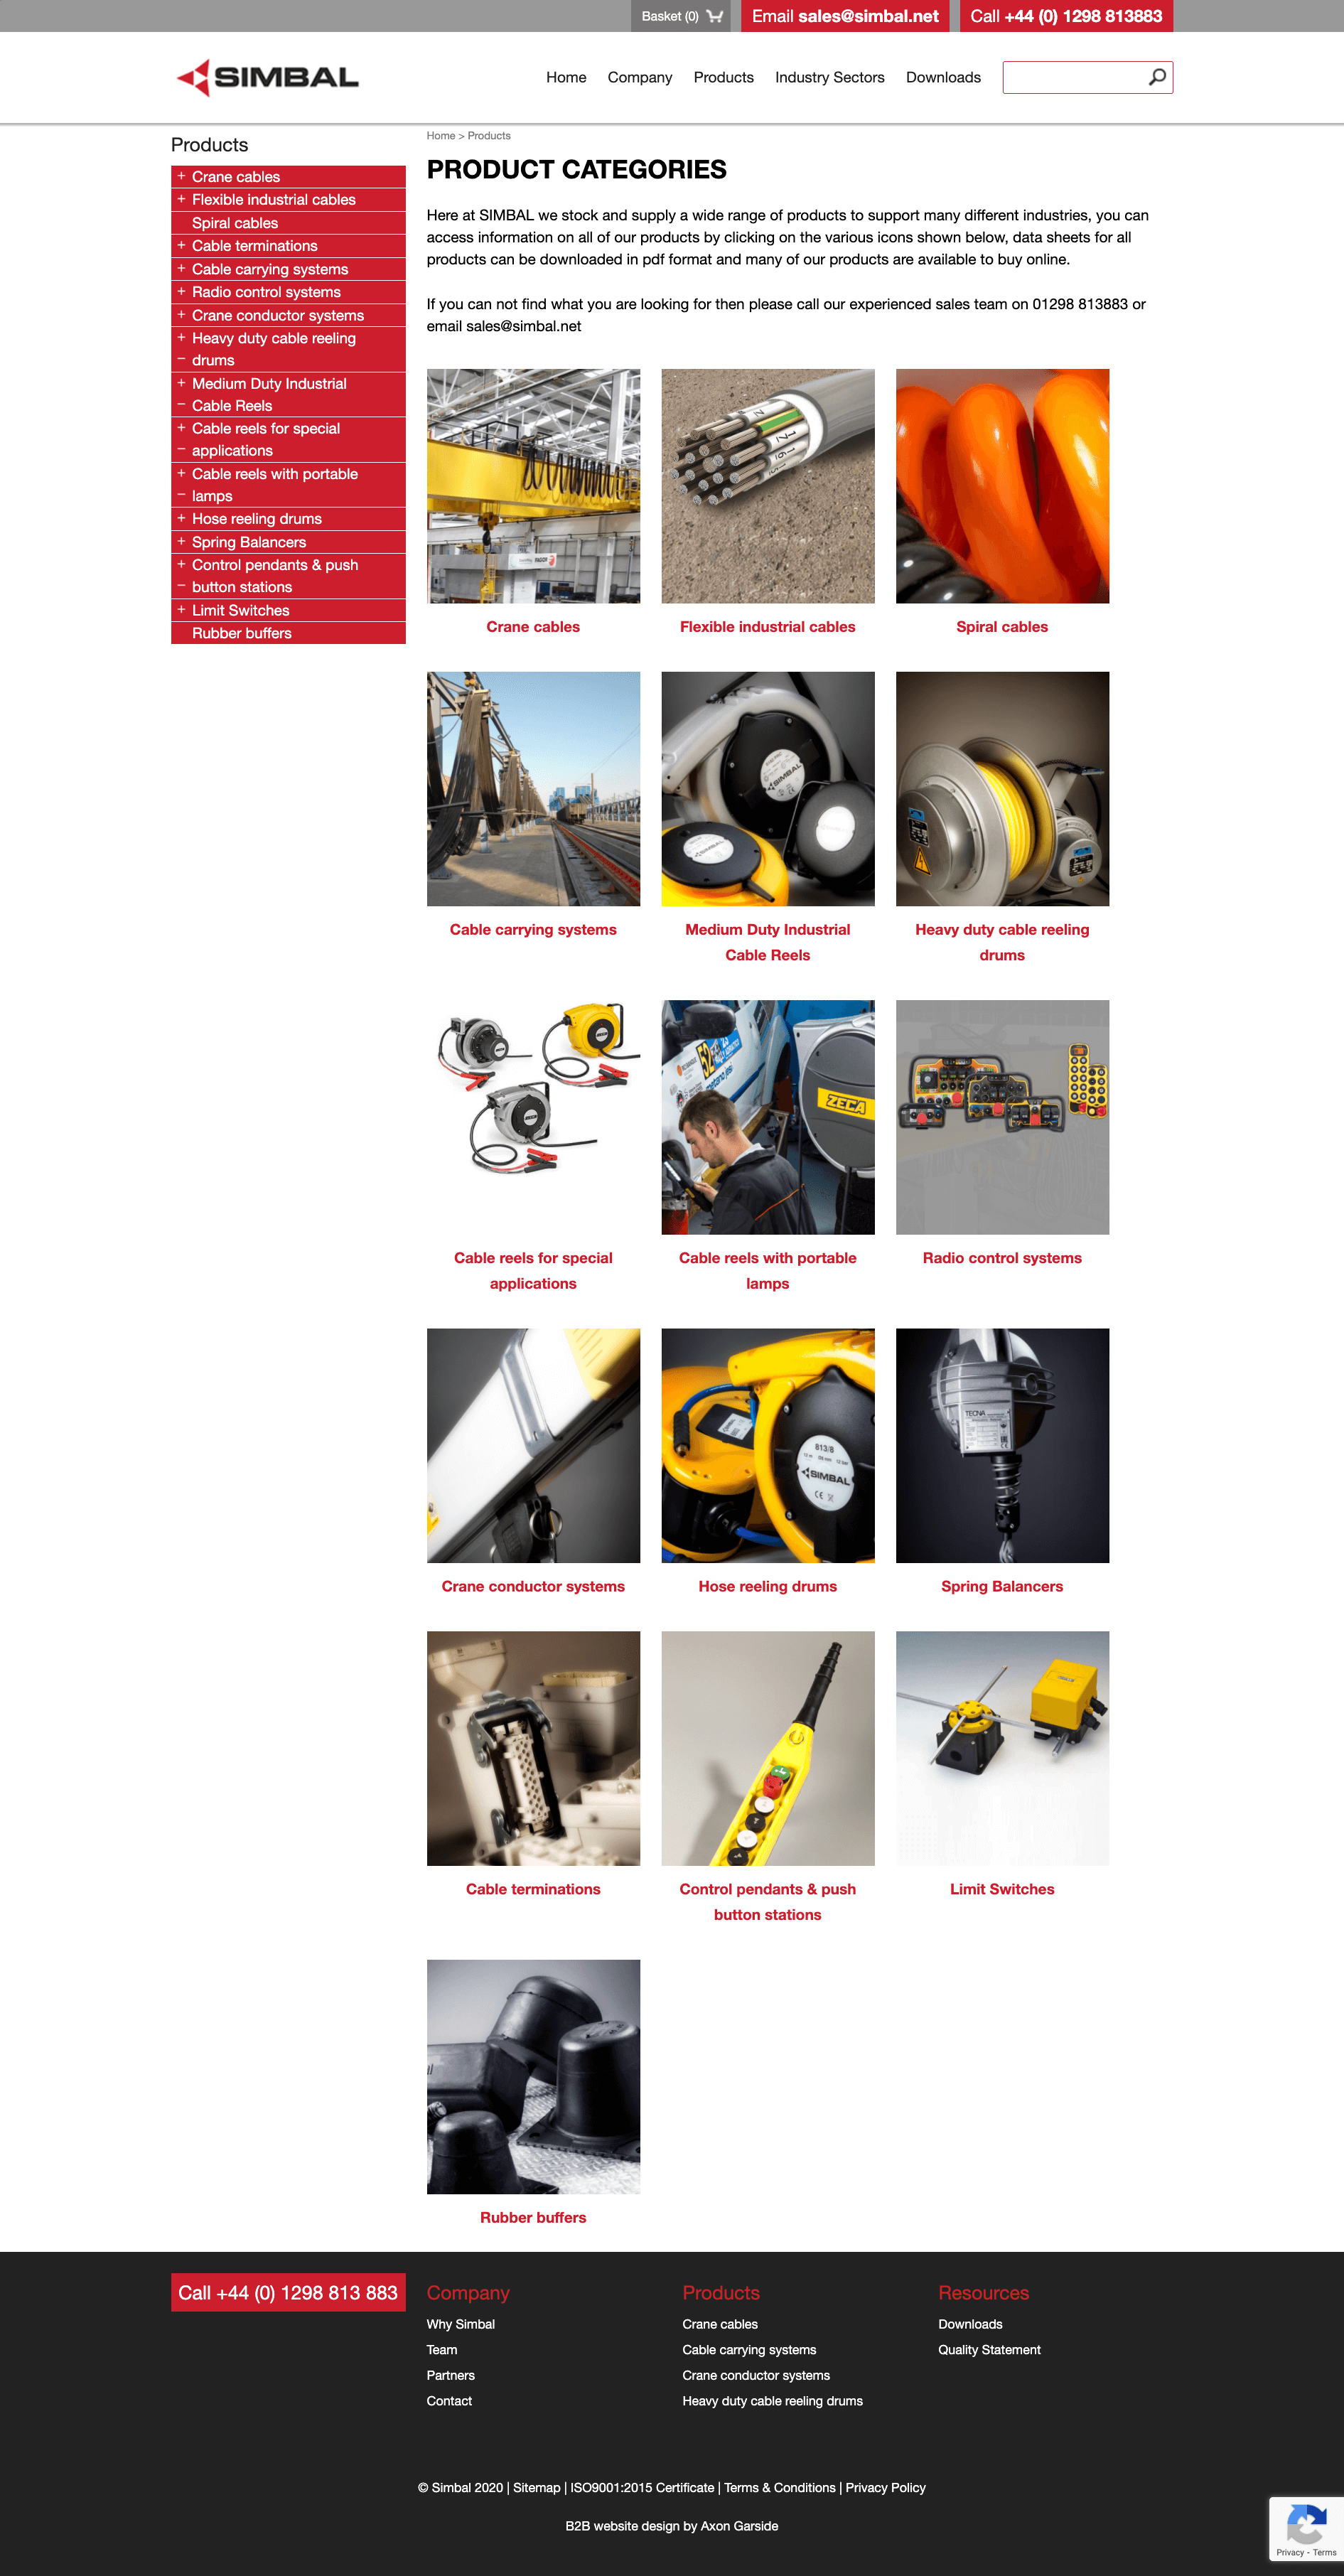 Products-Specialist-parts-for-the-lifting-and-handling-industry2